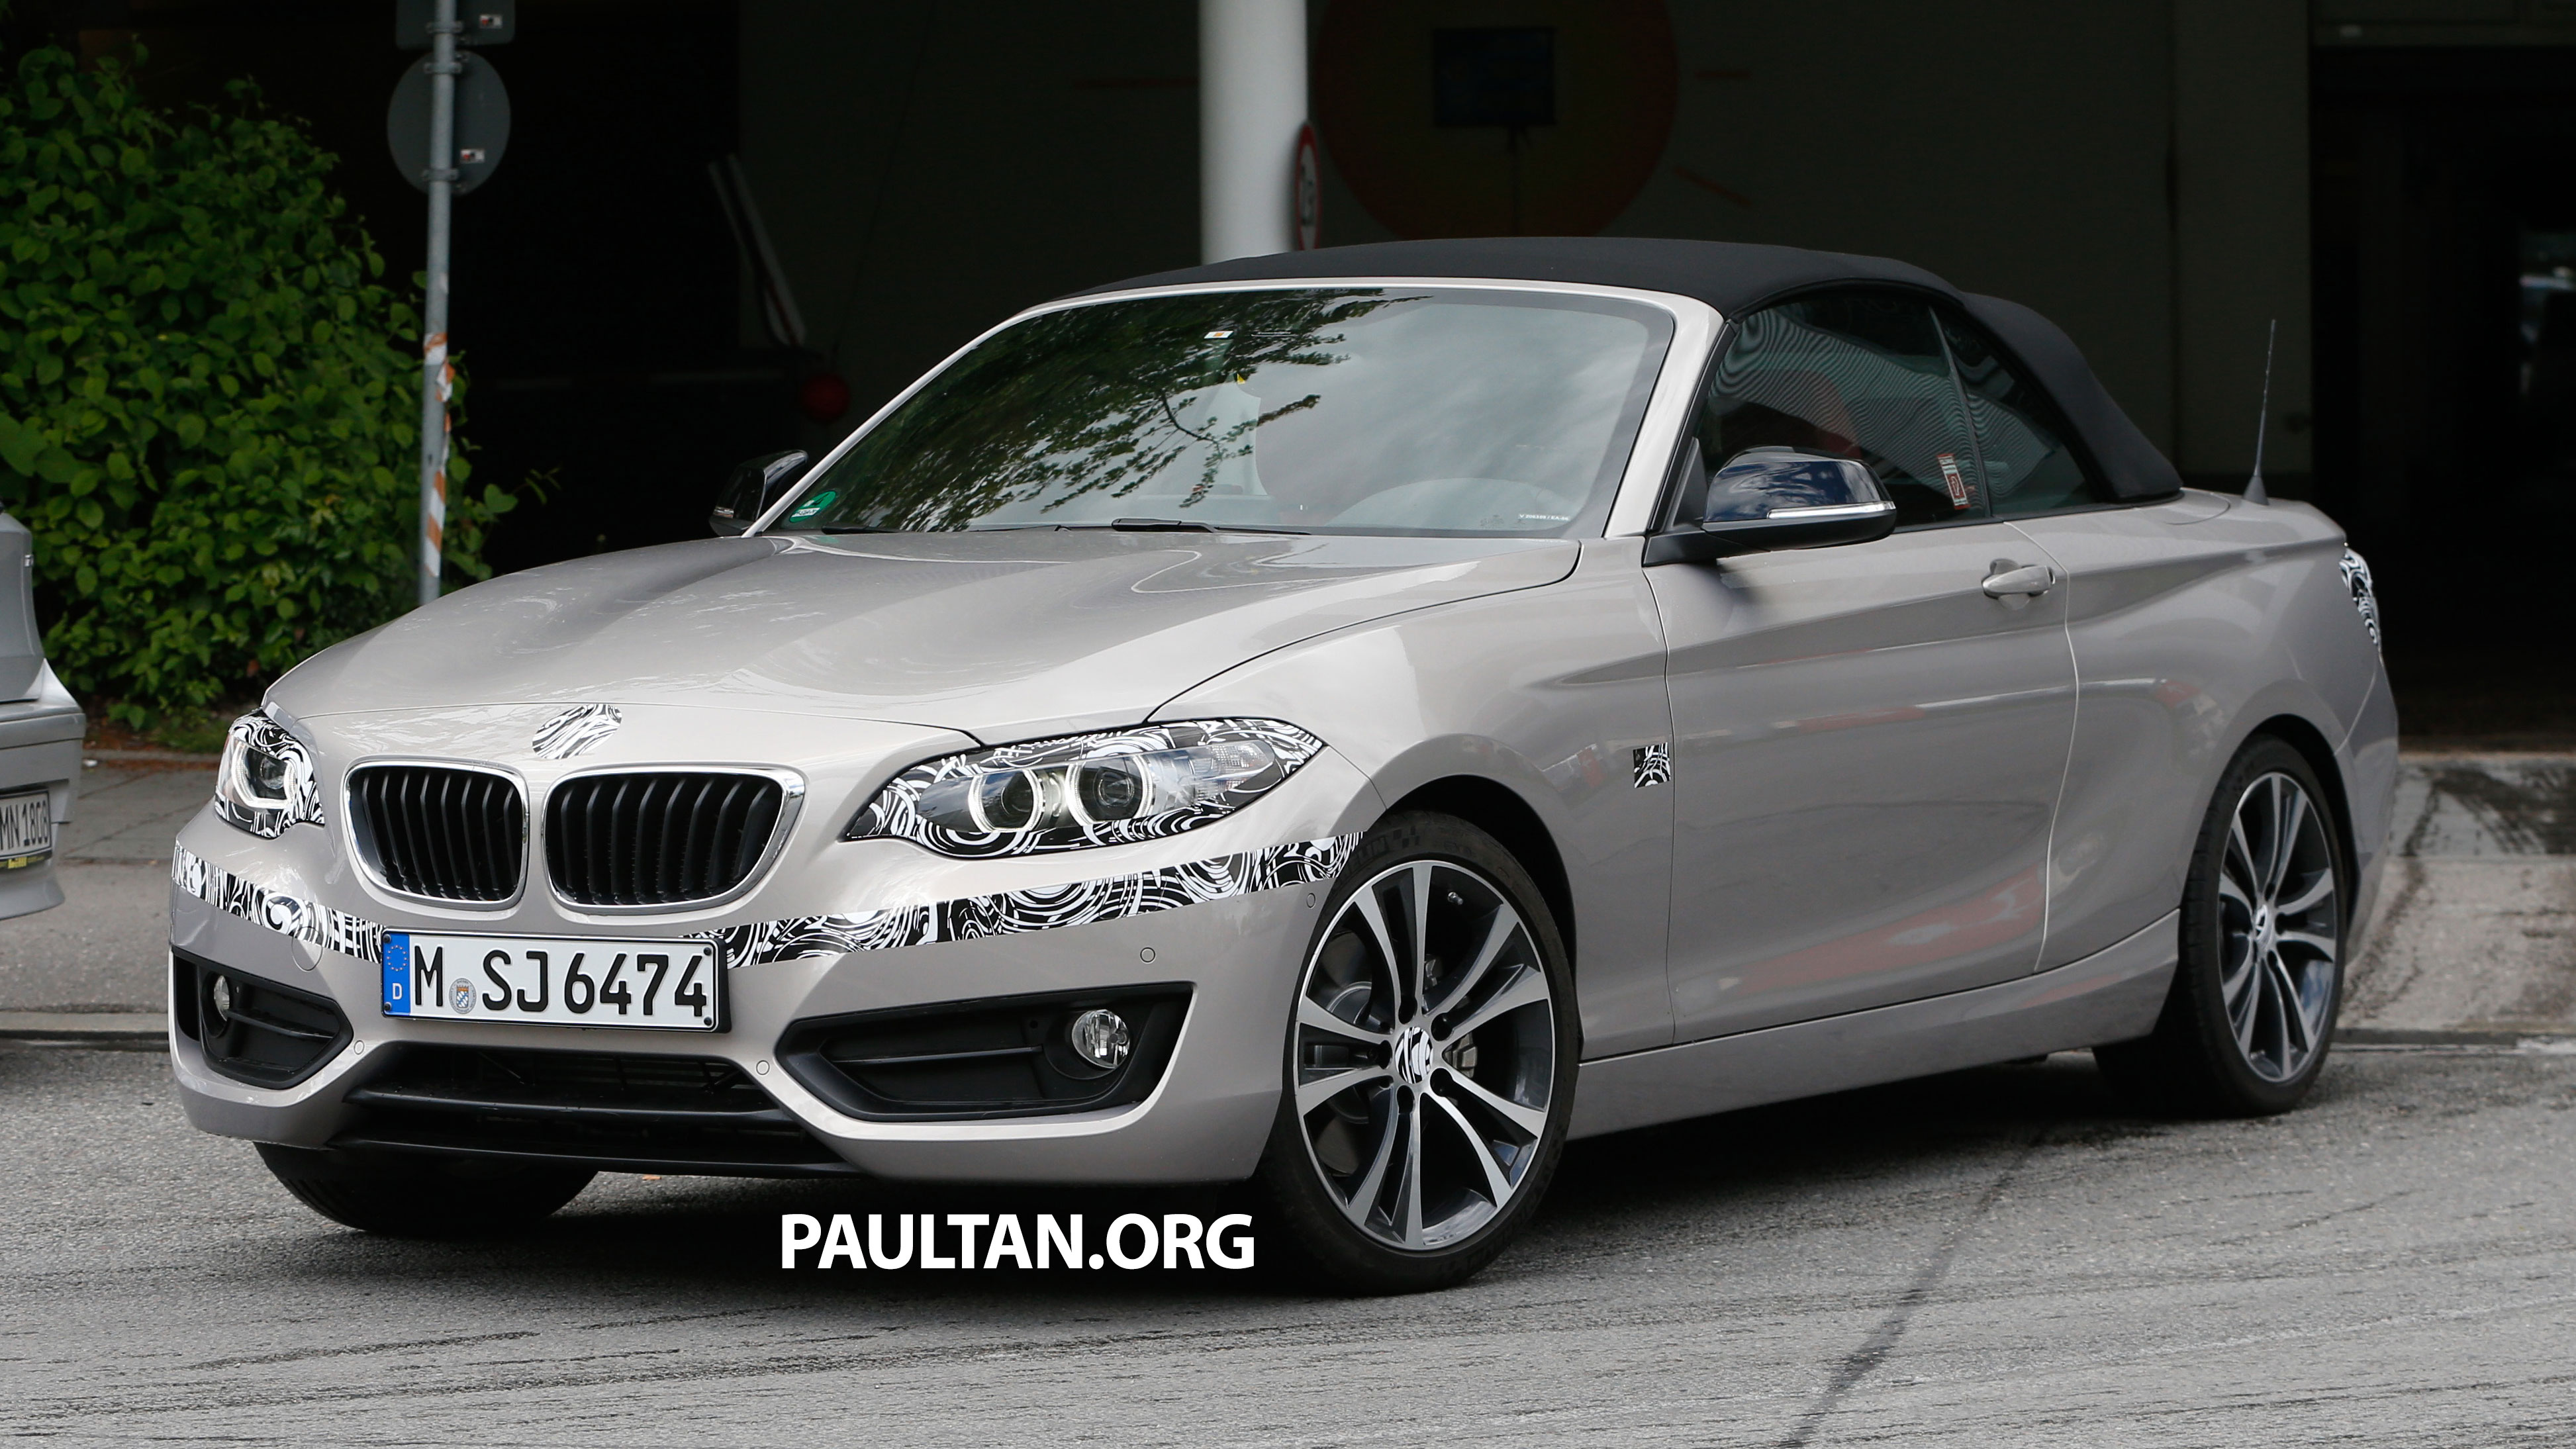 bmw 2 series cabriolet spied nearly undisguised image 248306. Black Bedroom Furniture Sets. Home Design Ideas